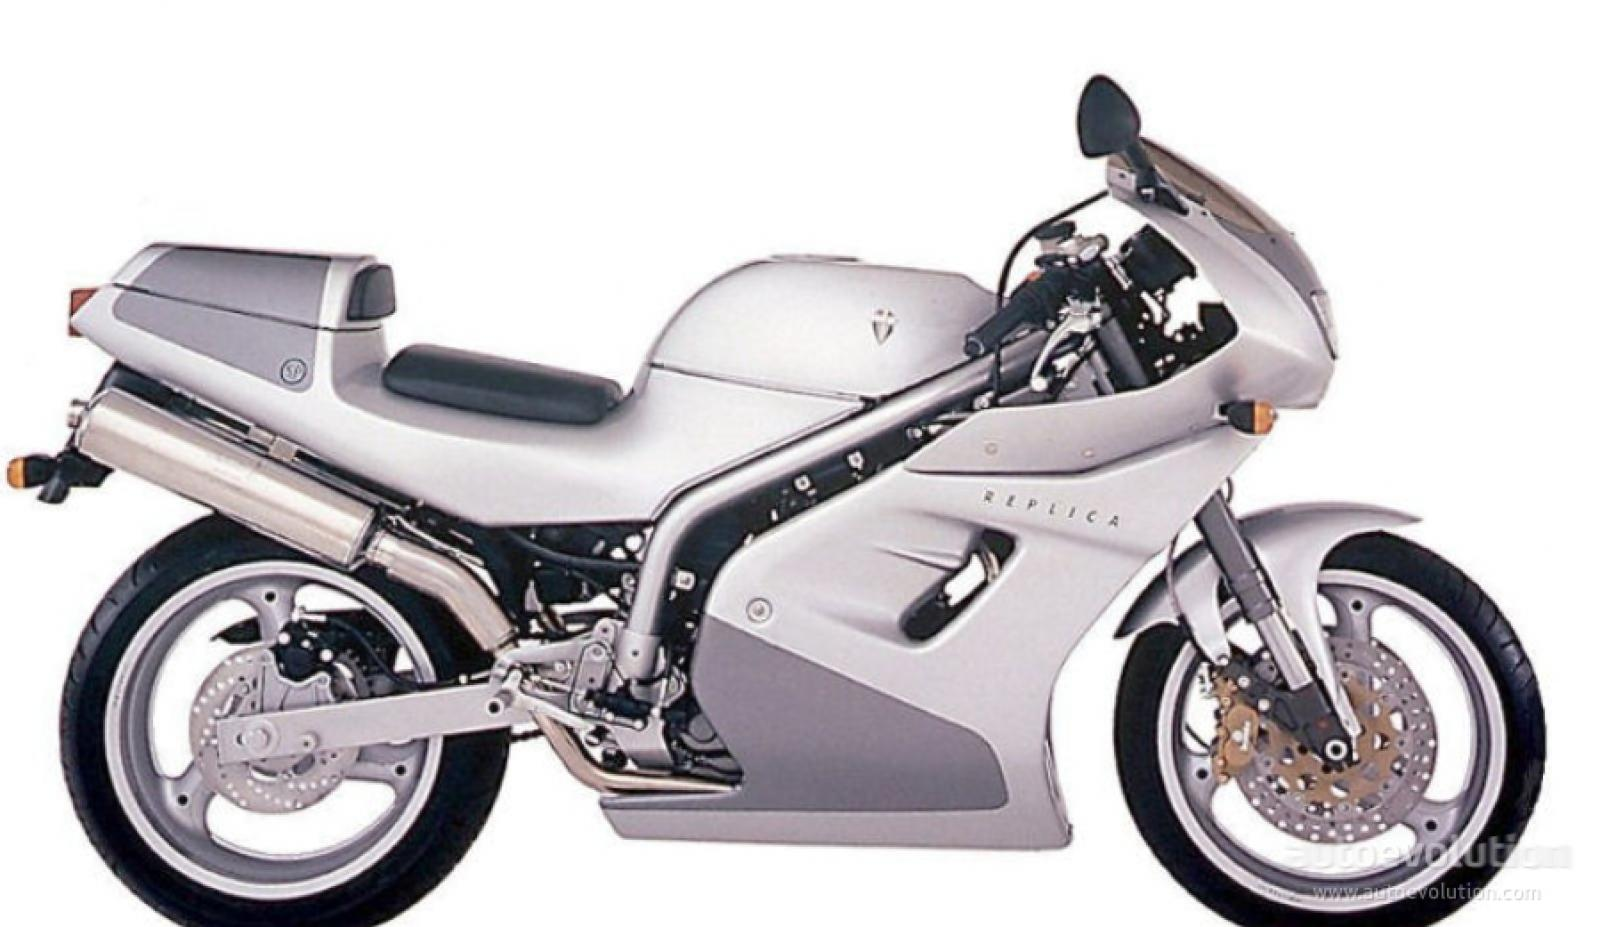 MZ Skorpion 660 Sport 1995 images #116476